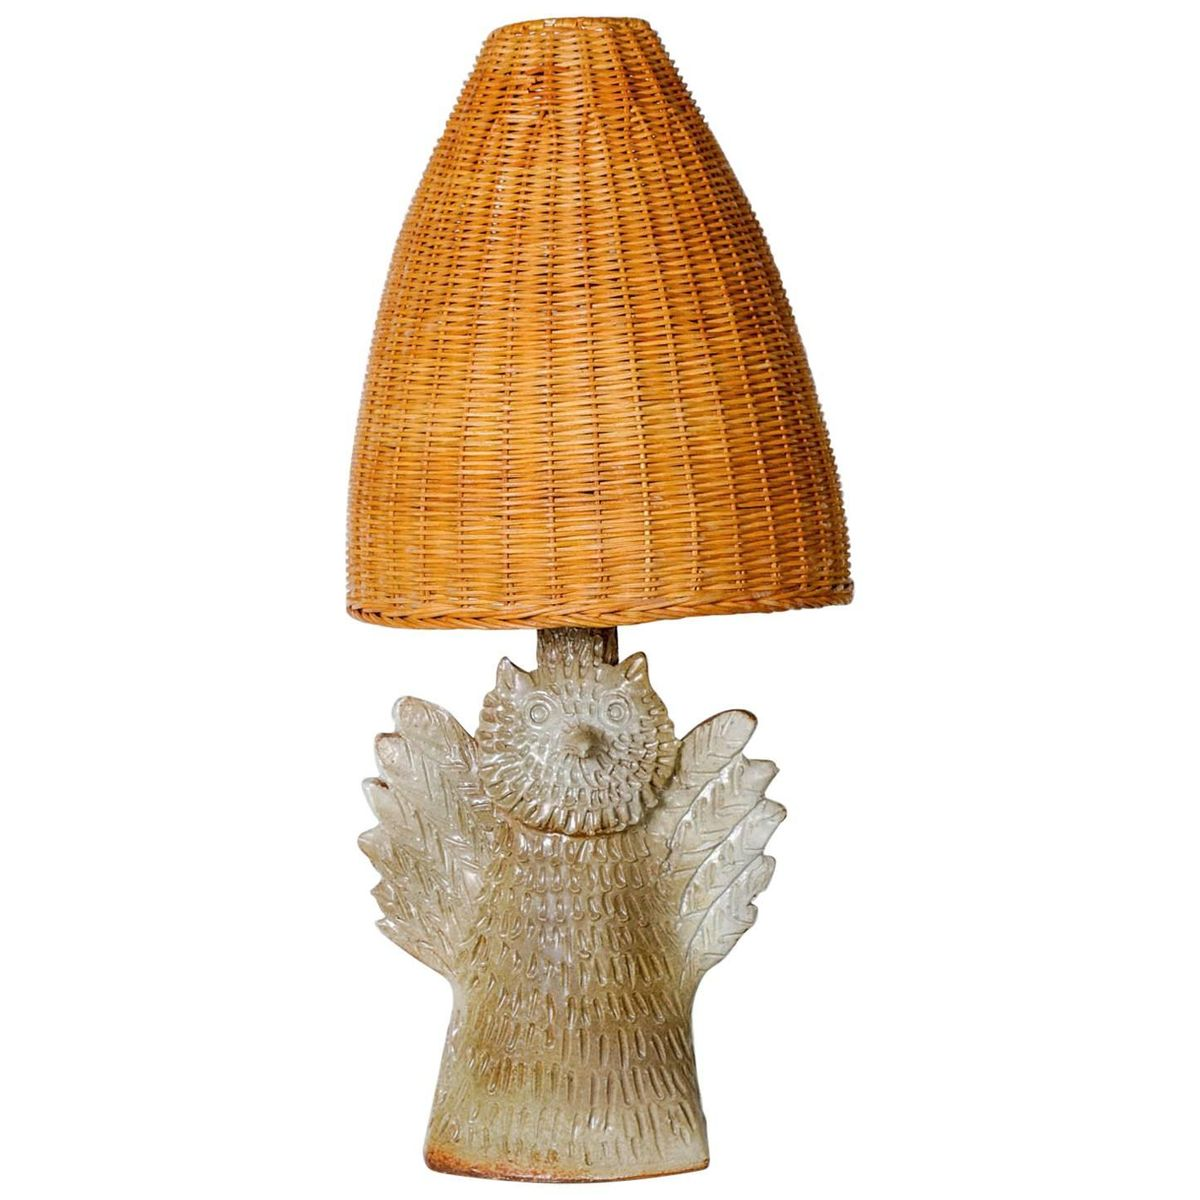 Owl table lamp in vallauris ceramic 1950s for sale at pamono owl table lamp in vallauris ceramic 1950s aloadofball Choice Image